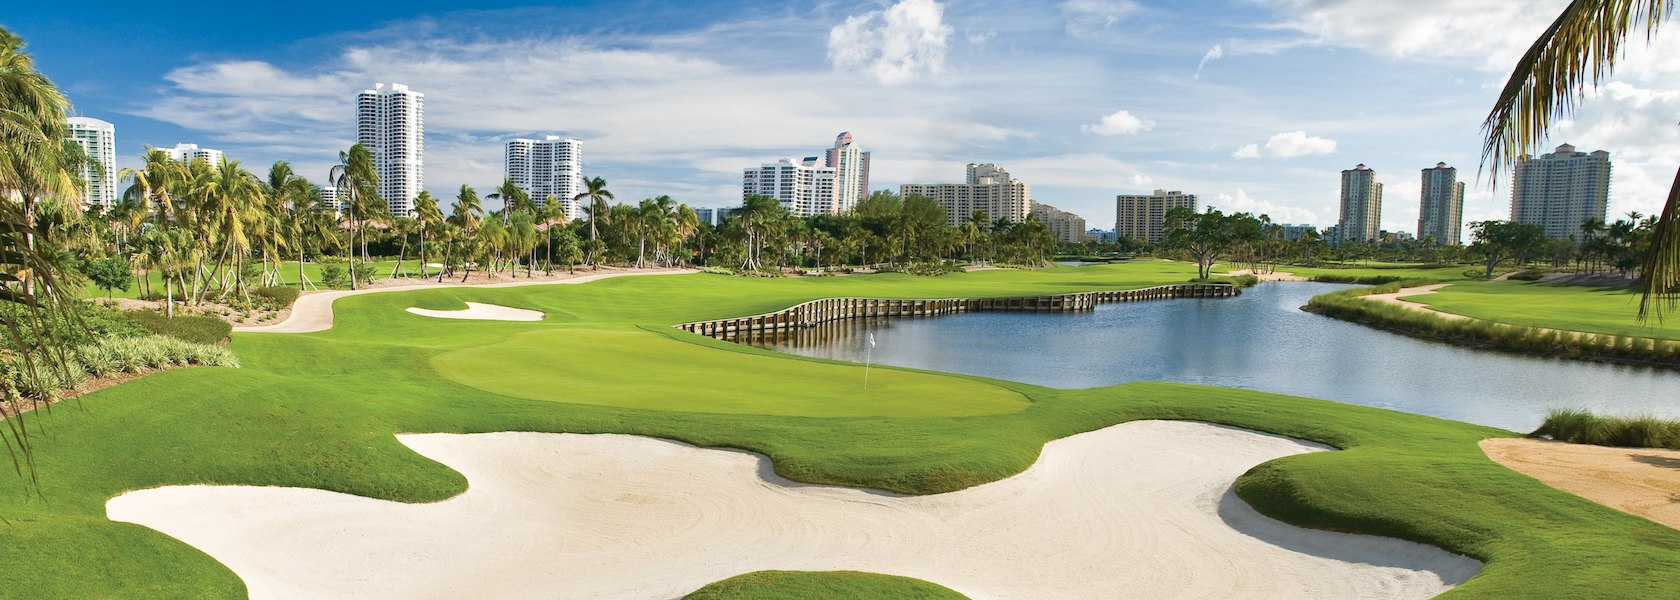 Hole 11 green at Golf Course JW Marriott Turnberry Isle Miami